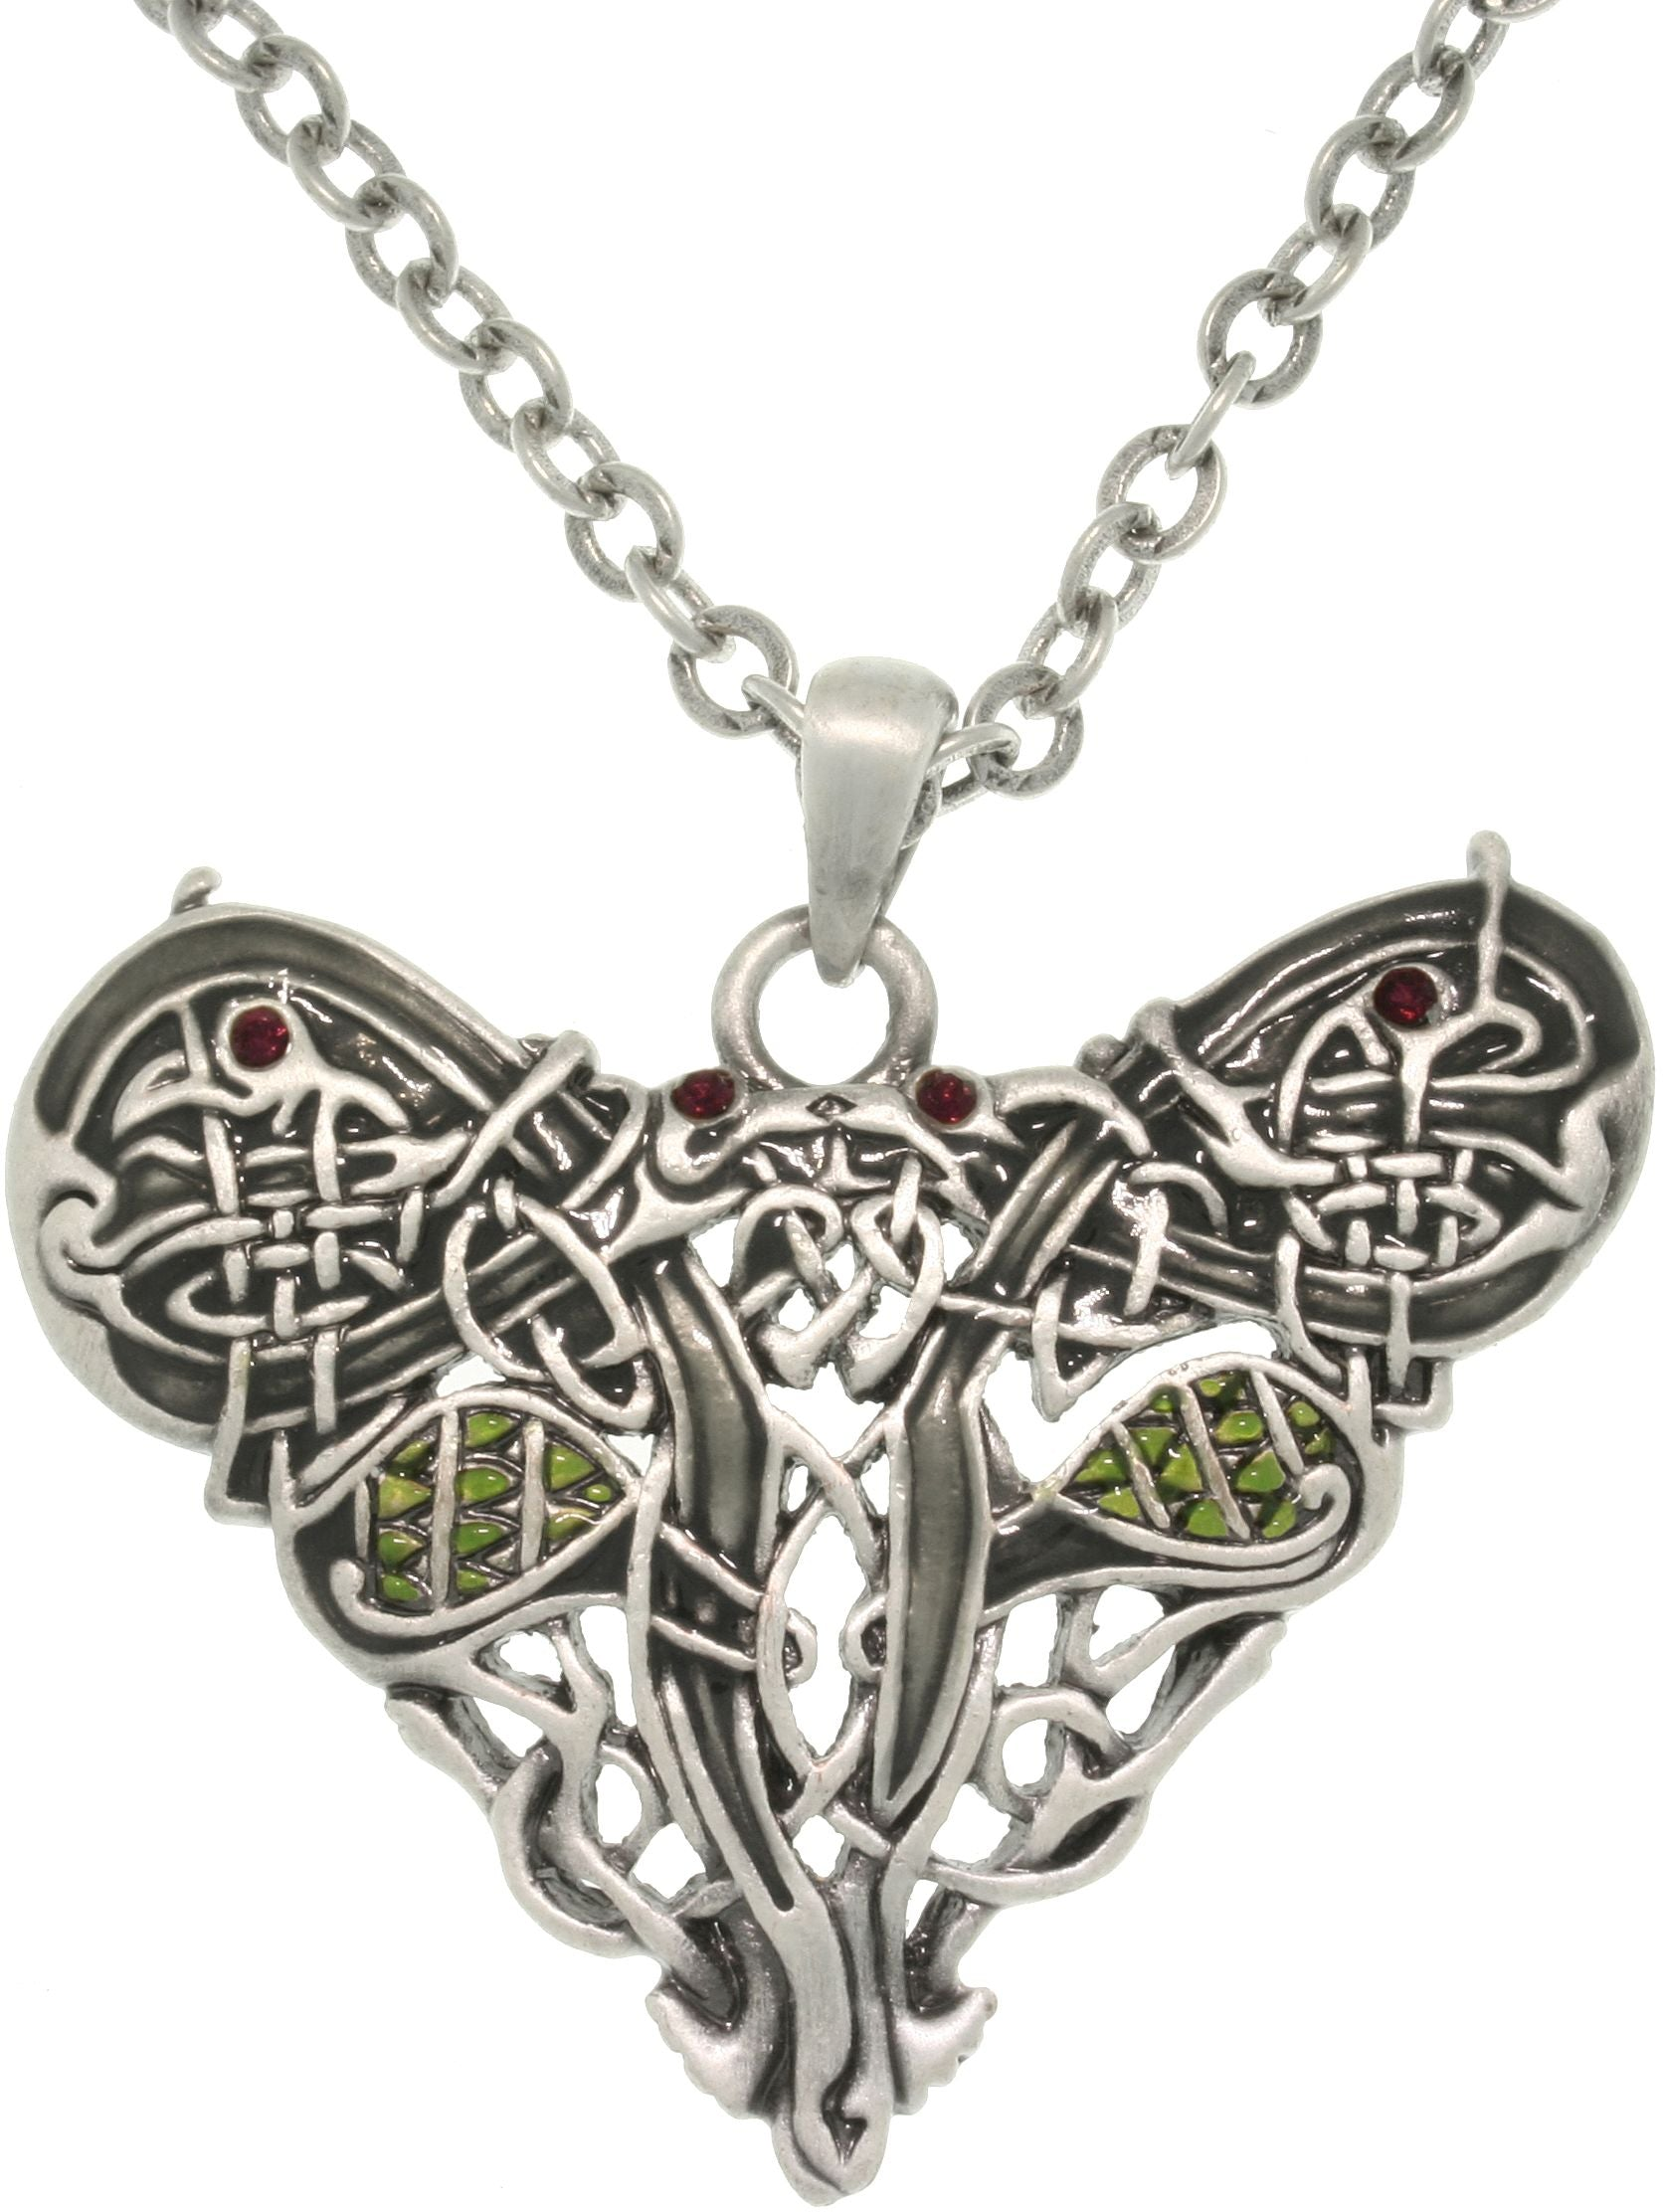 Jewelry Trends Pewter Crystal Celtic Dragon Heart Pendant with 23 Inch Chain Necklace